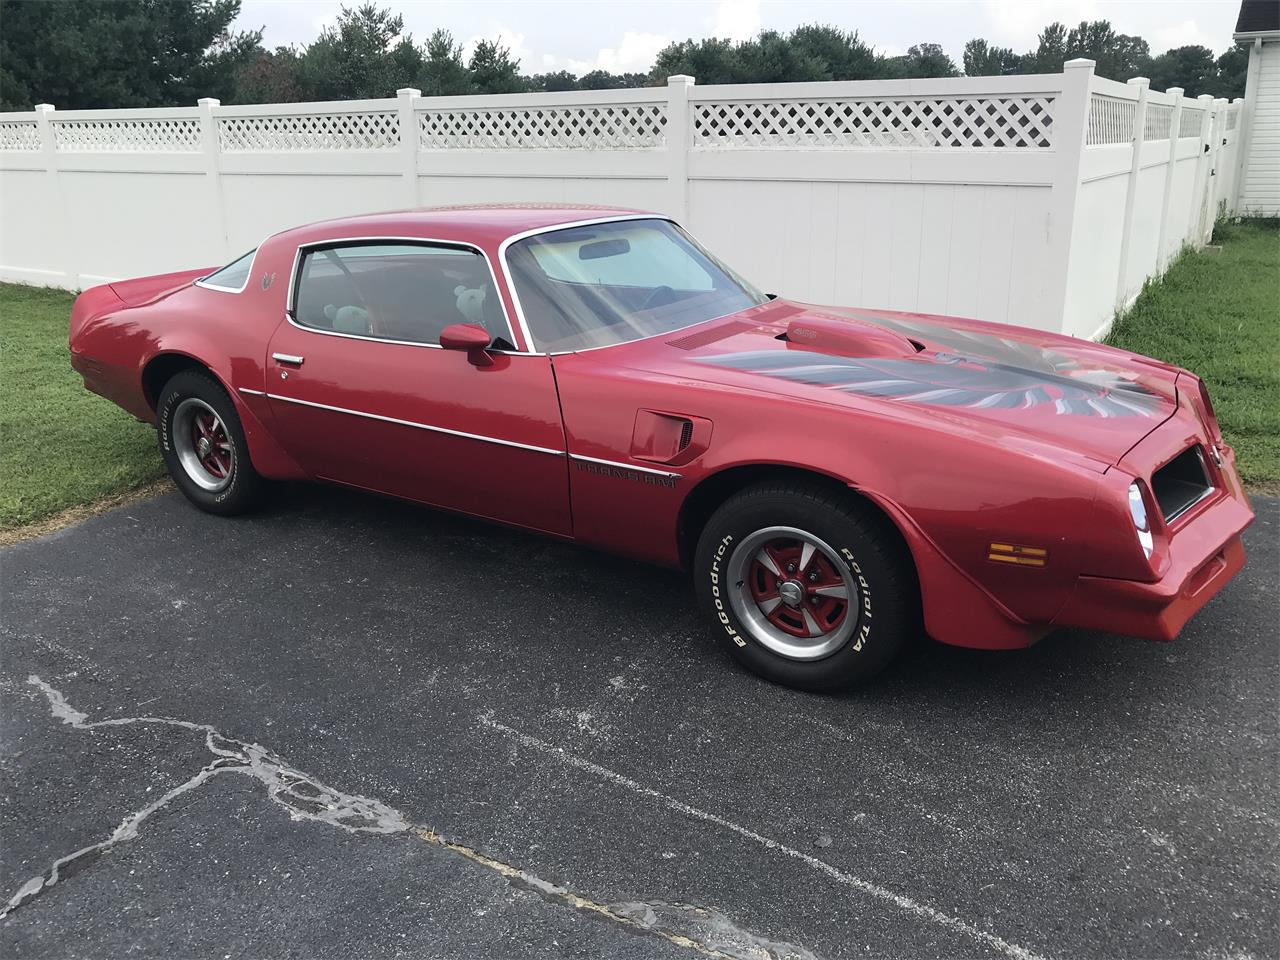 1976 Pontiac Firebird Trans Am (CC-1265013) for sale in Georgetown, Delaware